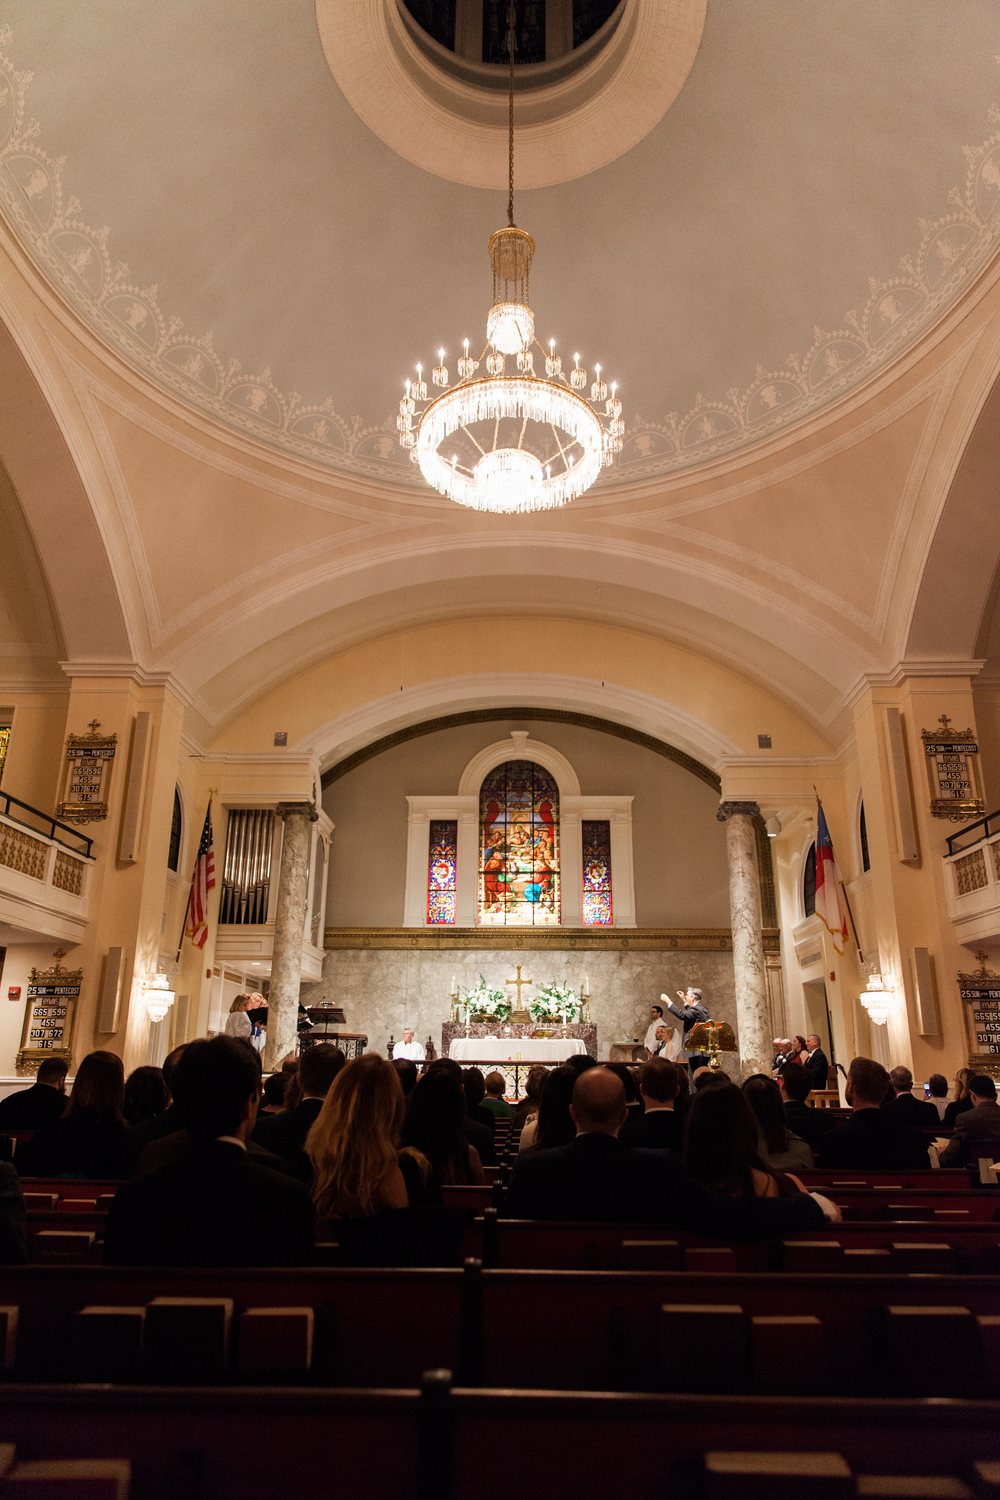 st. john's church lafayette square washington dc wedding planner